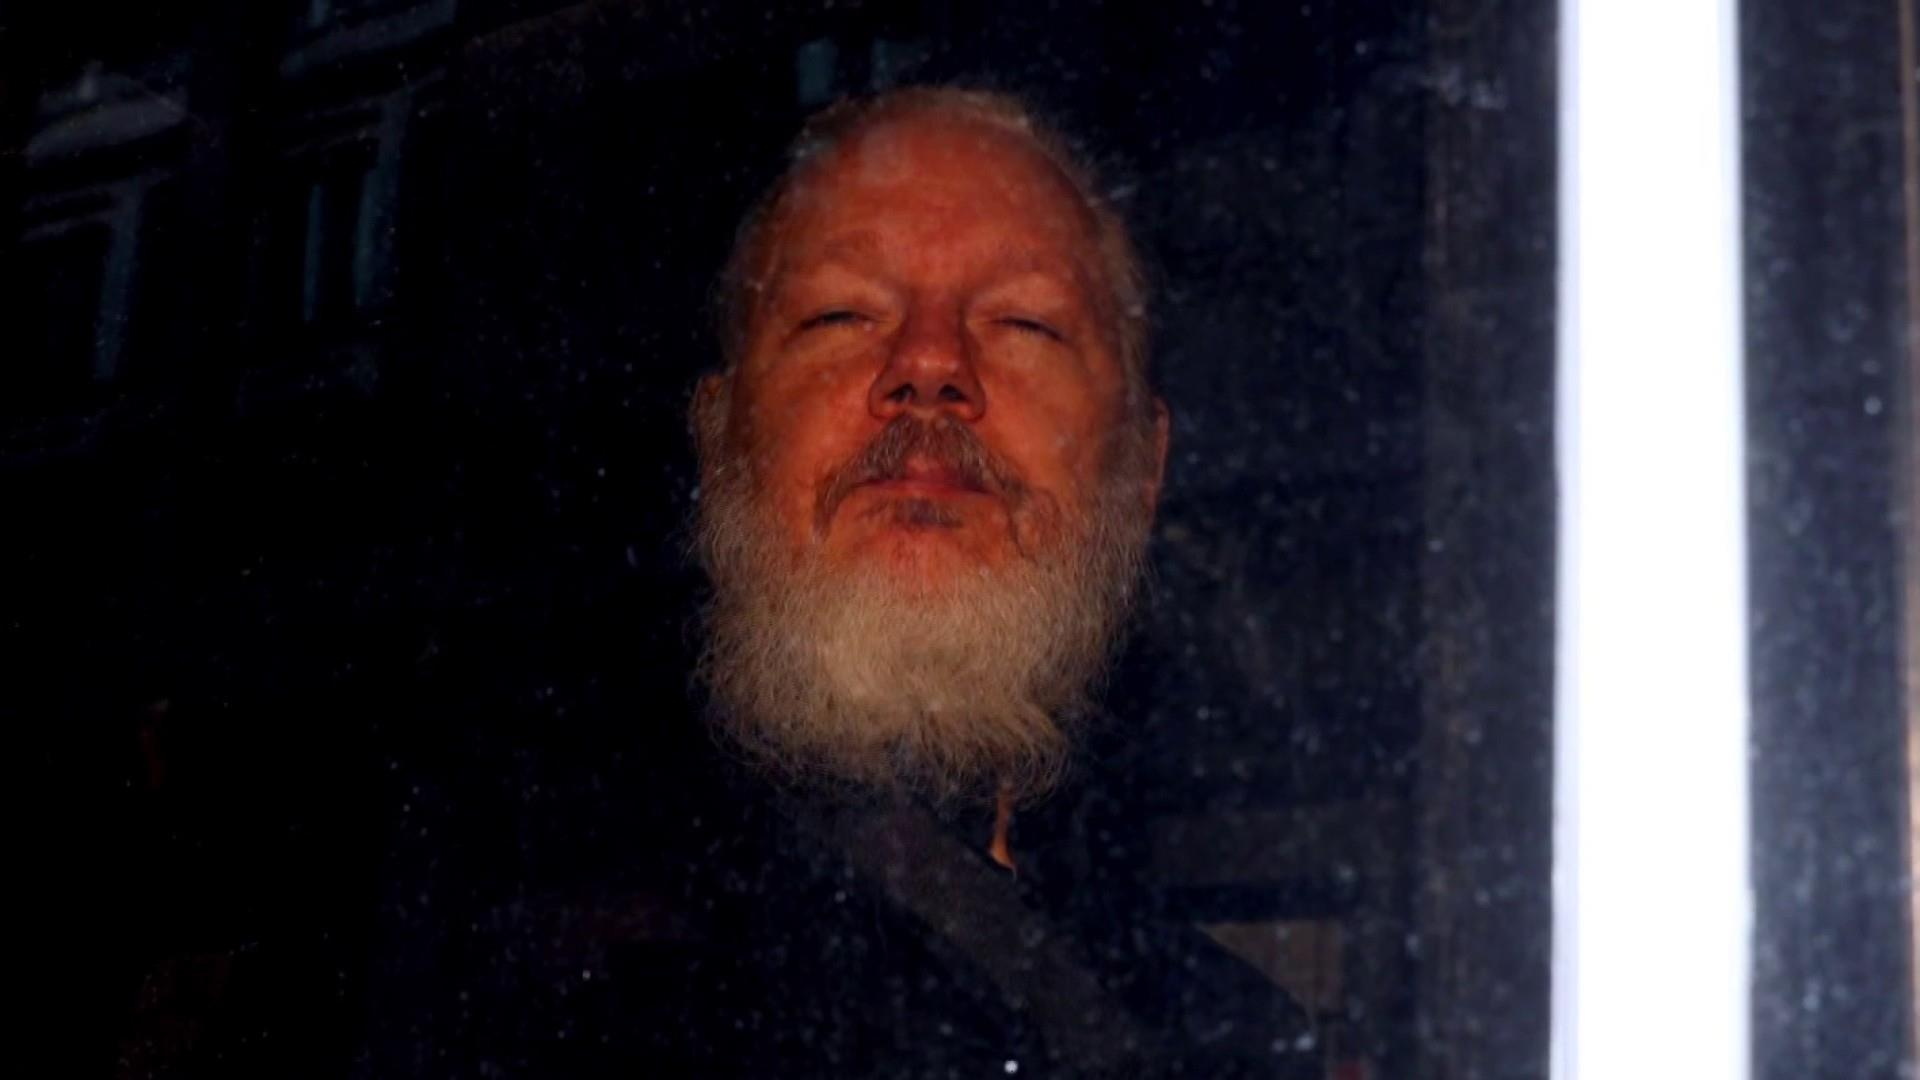 What's next for Julian Assange?